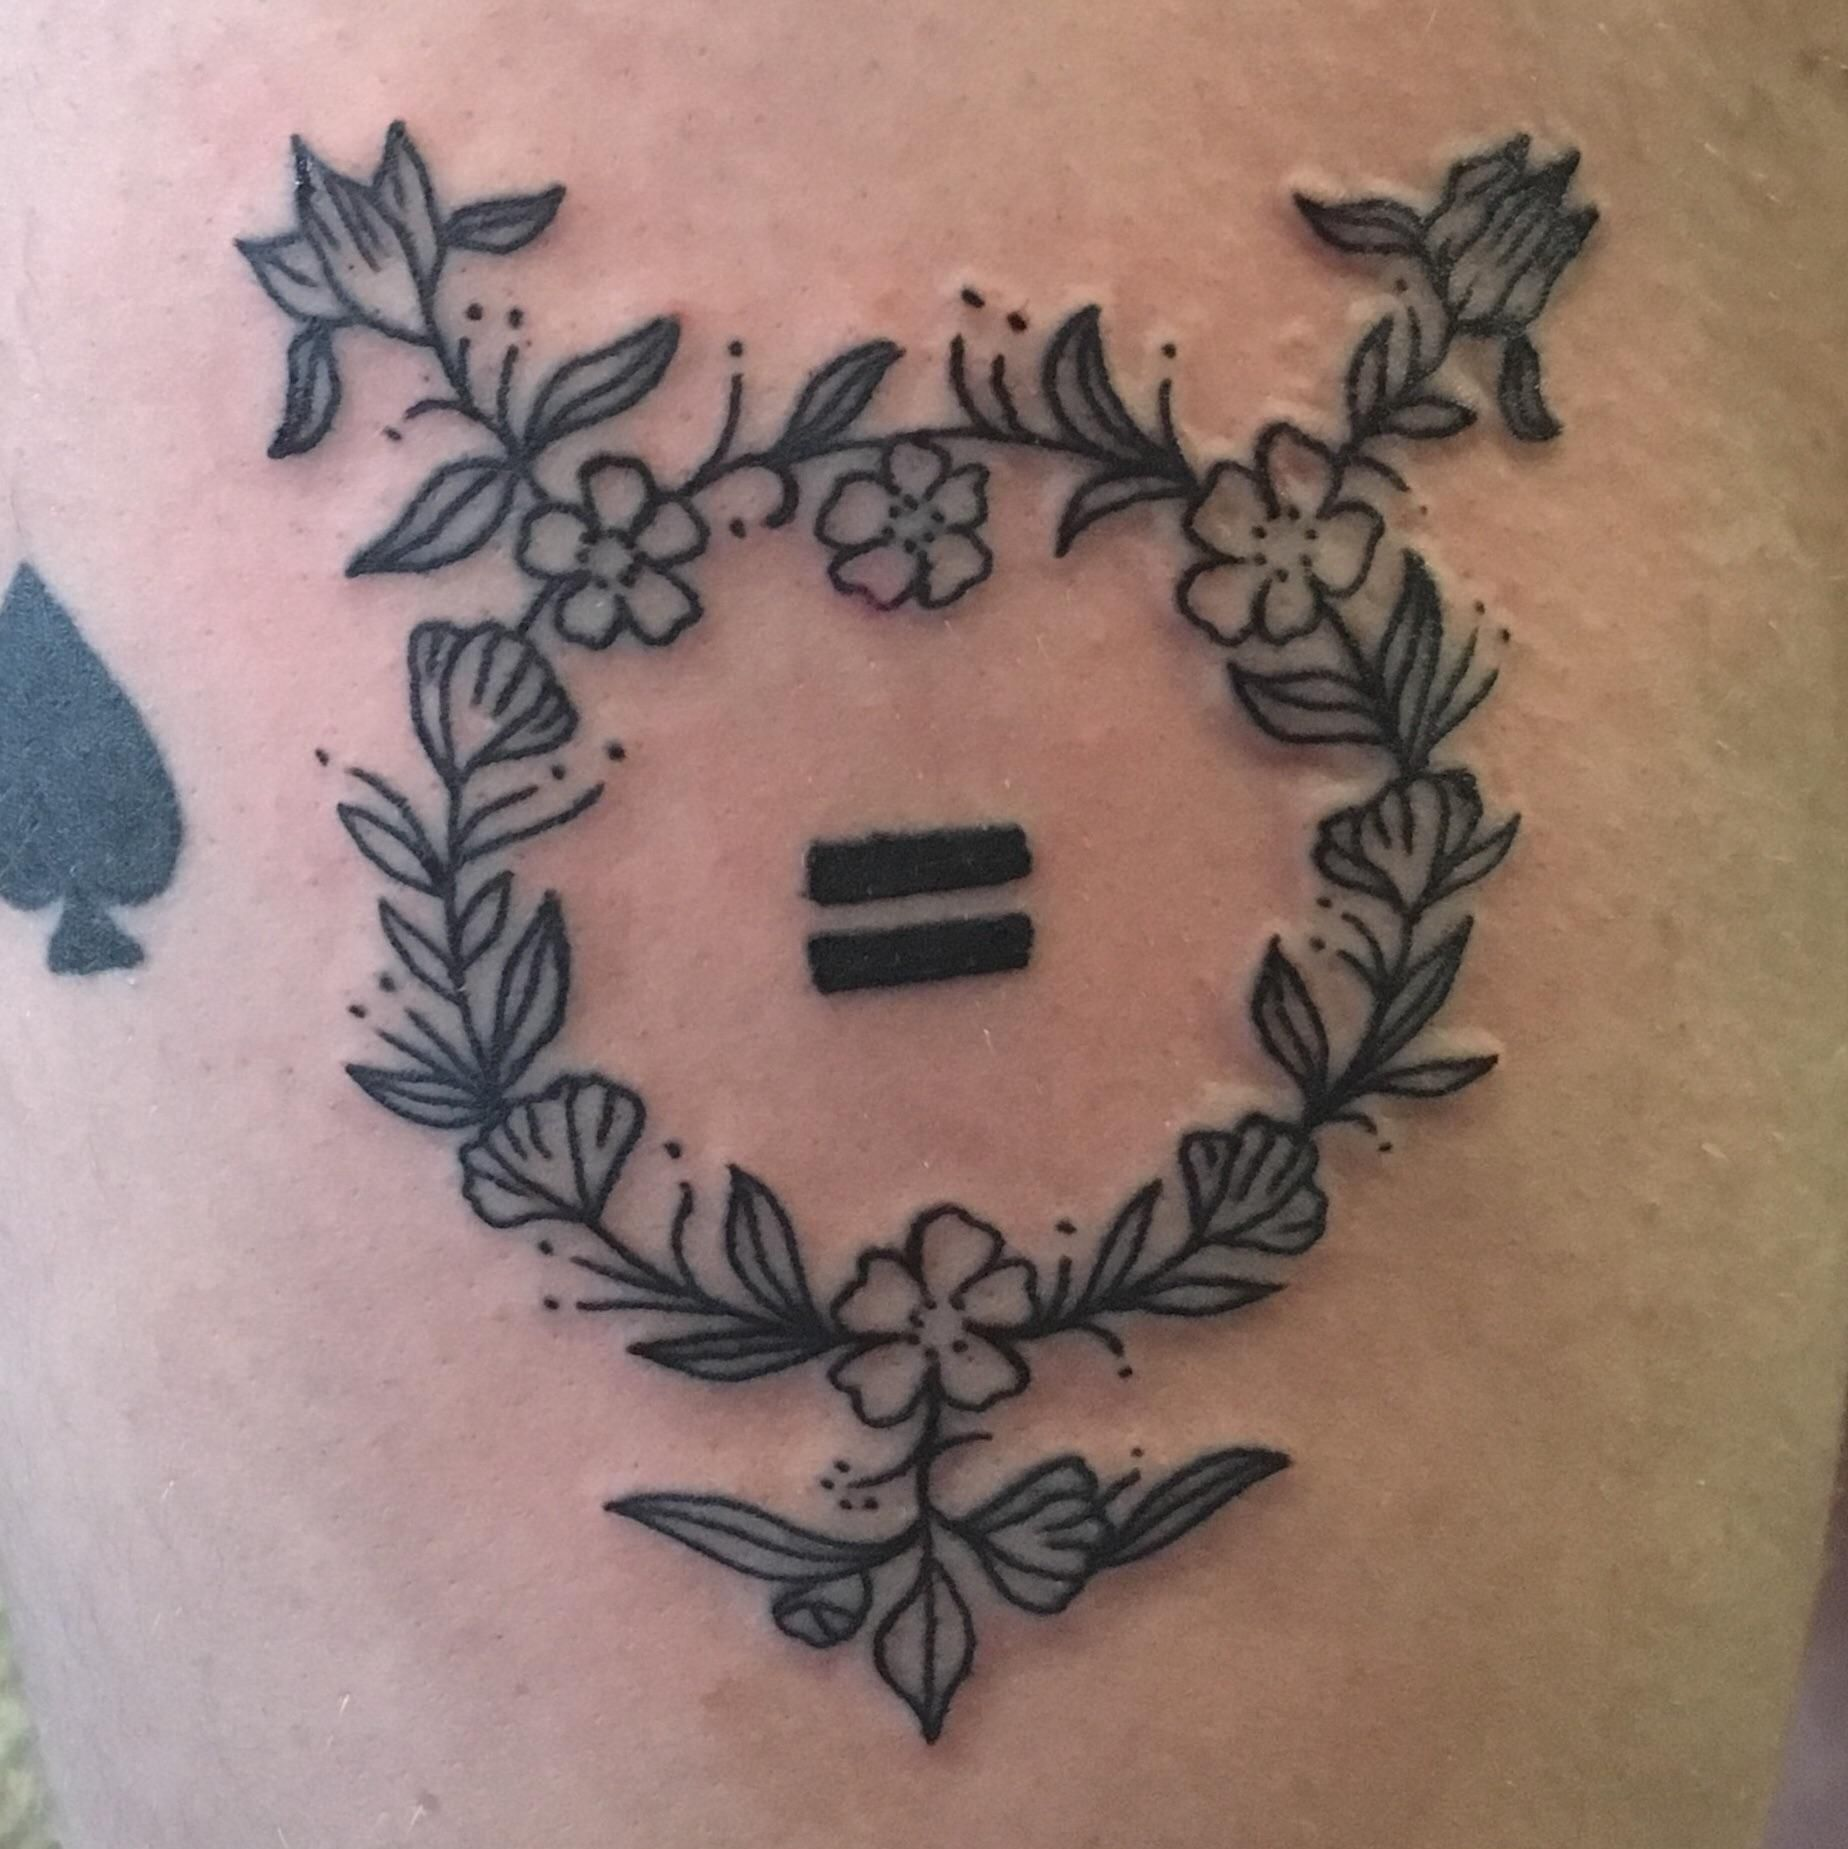 Floral Transgender Symbol by Matt Wolf at Electric Hand Tattoo in Nashville